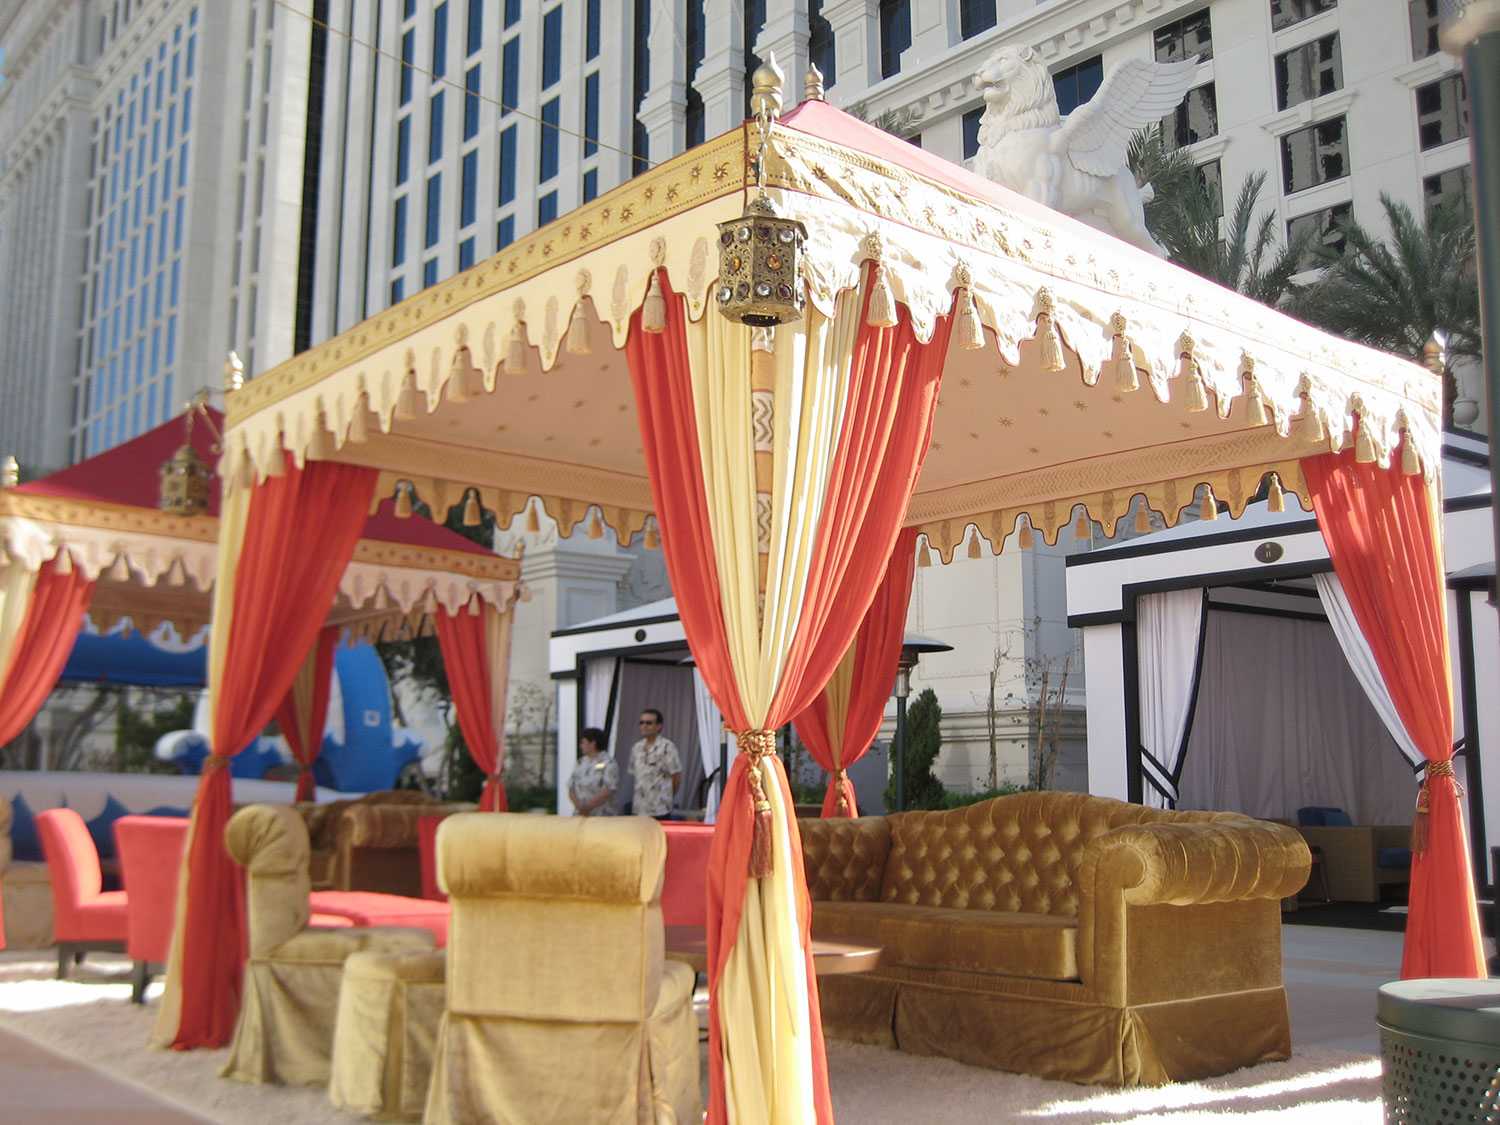 raj-tents-social-events-outdoor-lounge.jpg